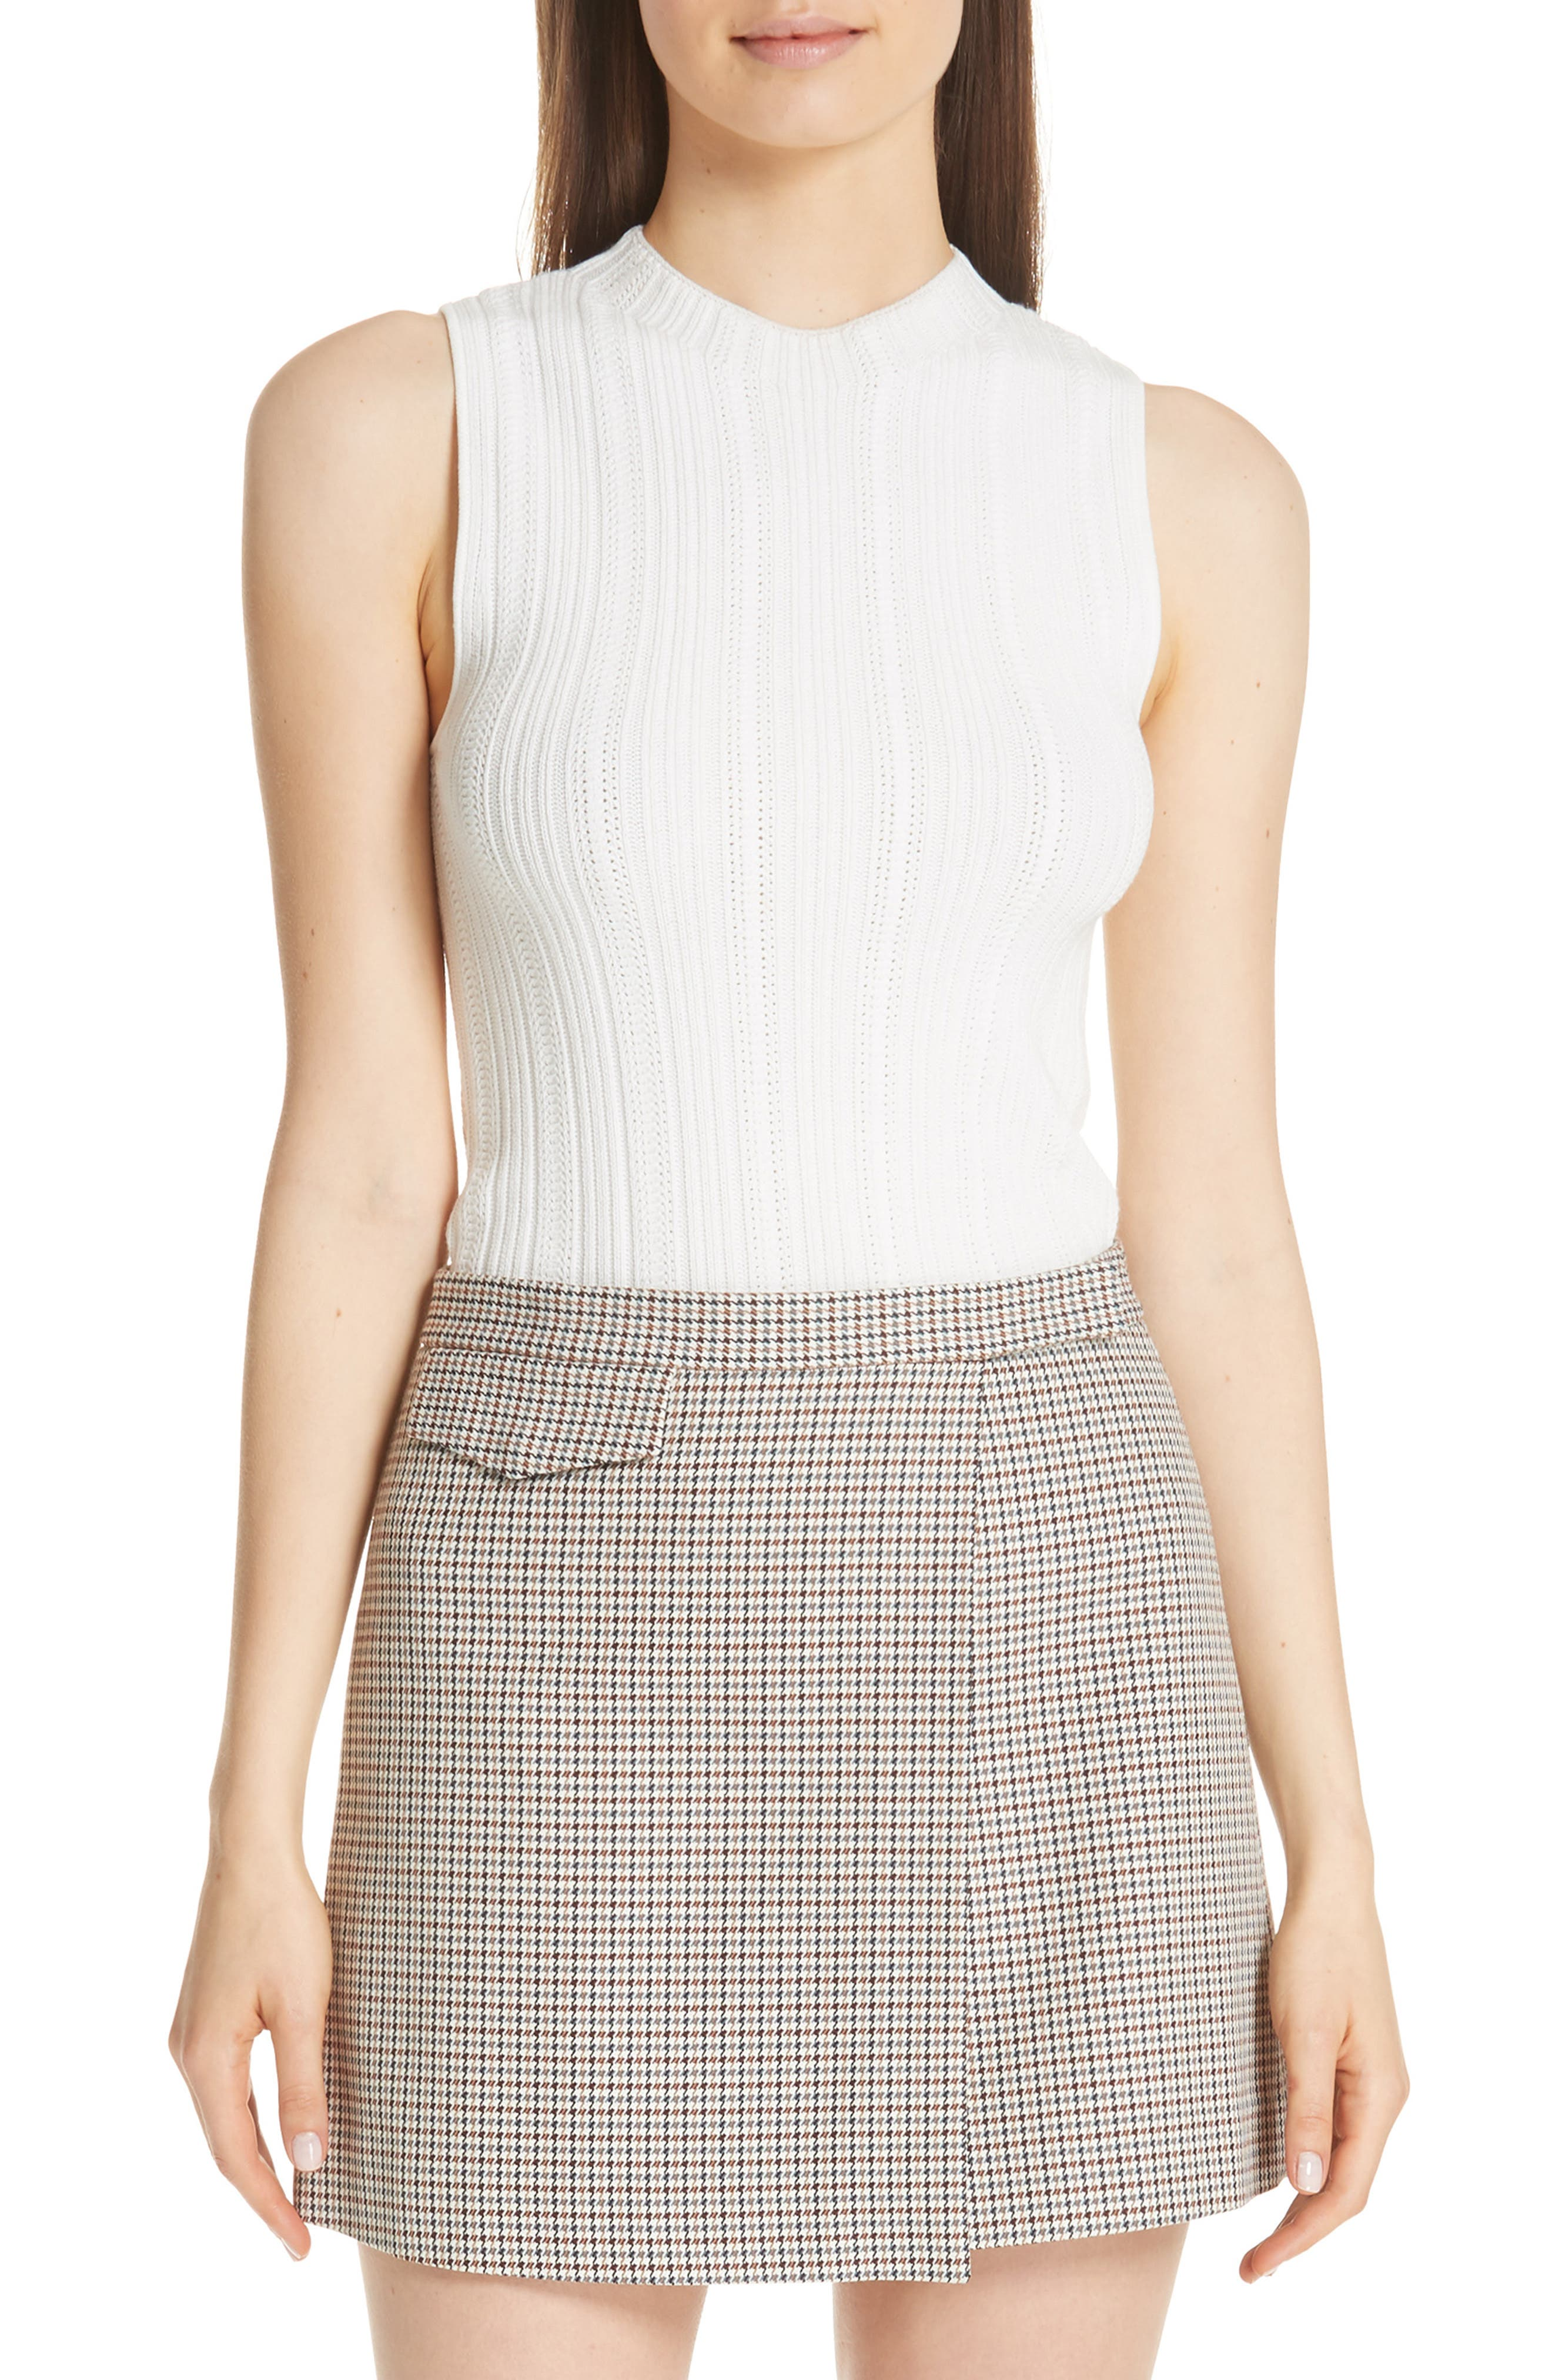 Pointelle Knit Shell by Theory